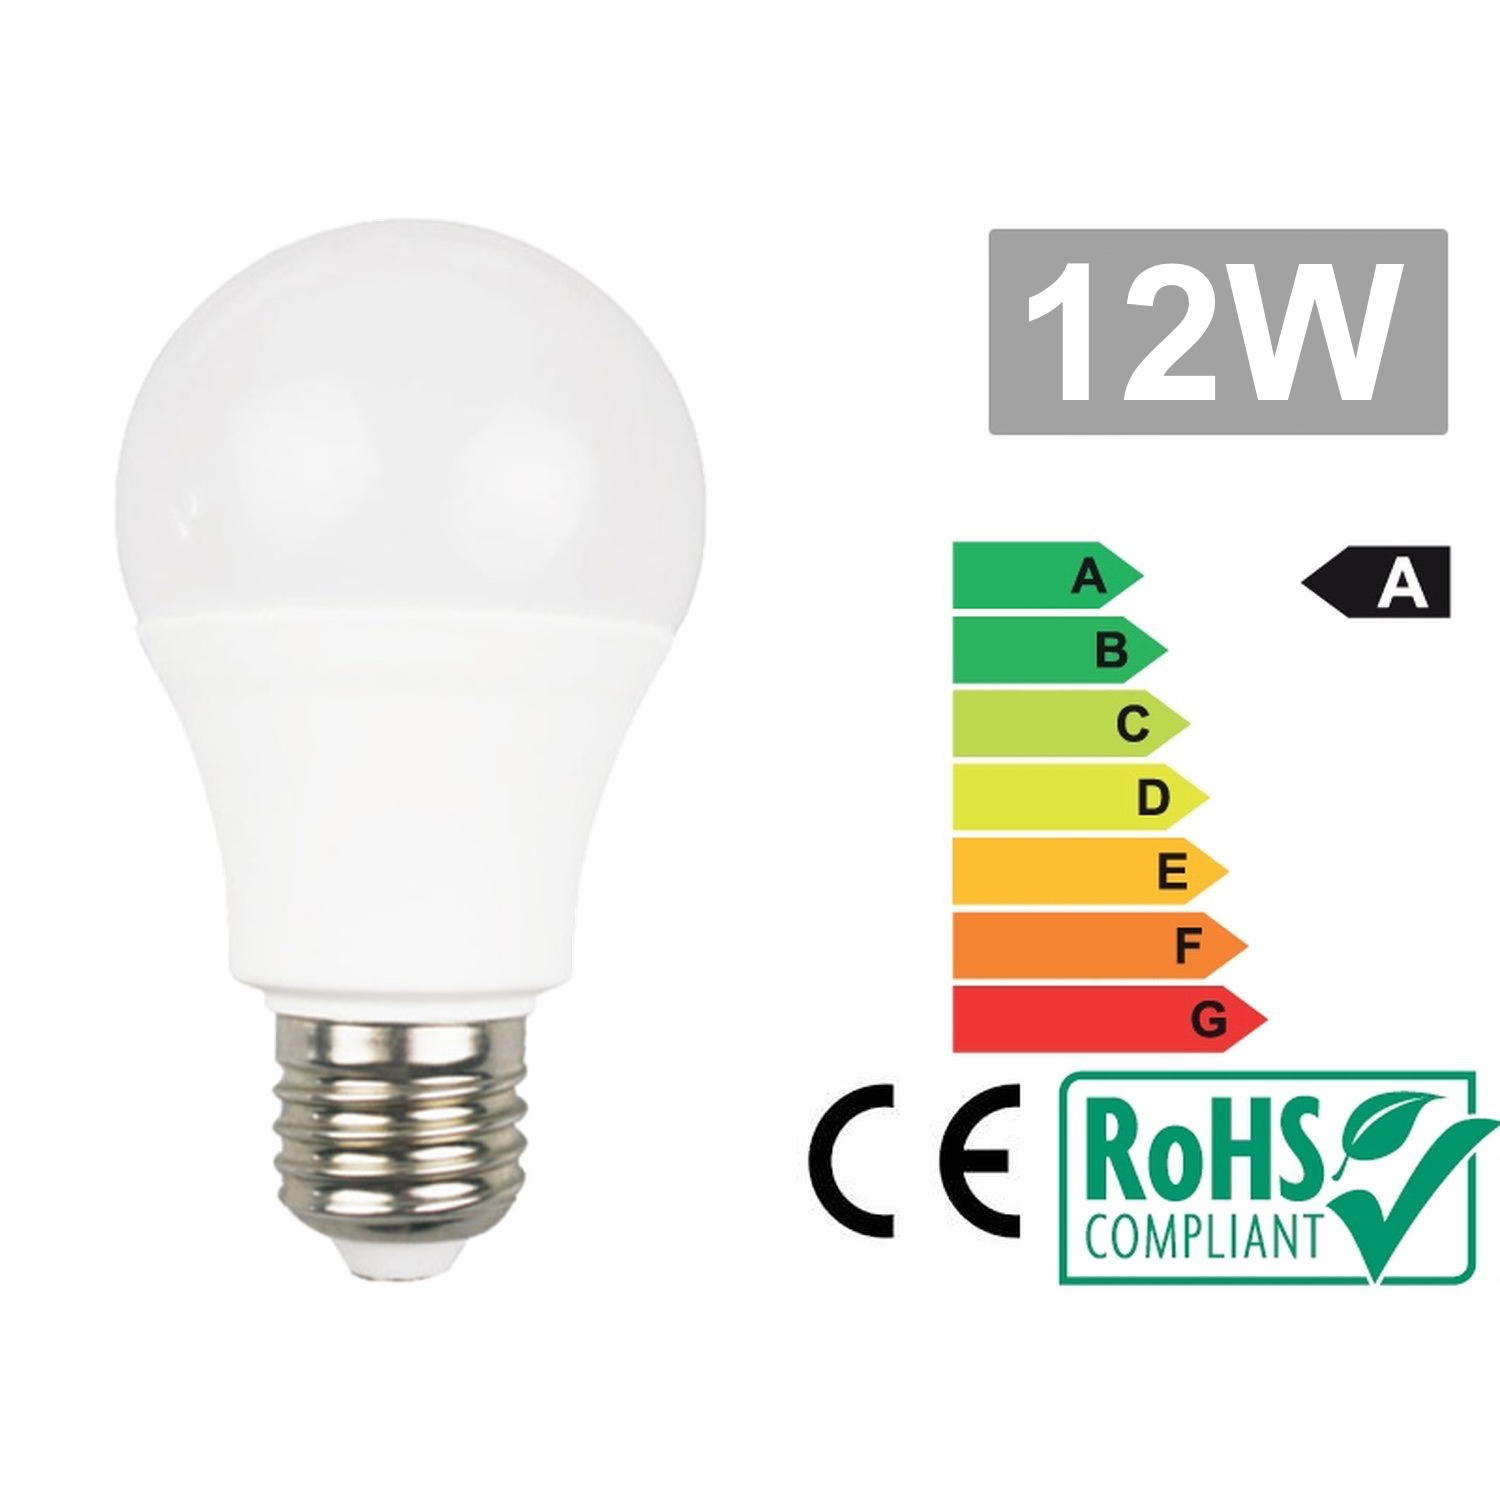 Led bulb E27 12W 6500k cold white